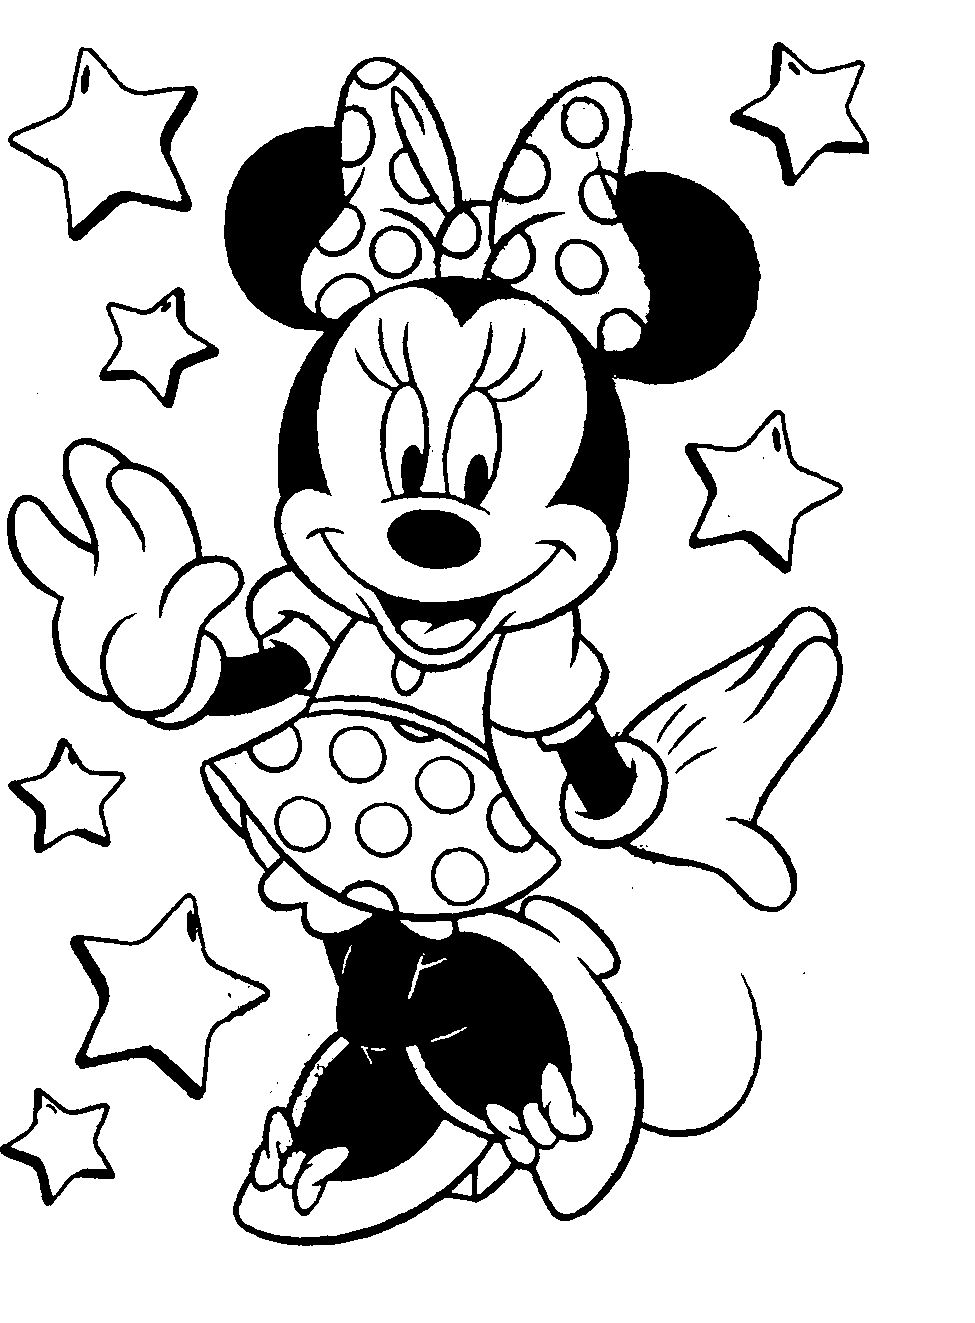 Mickey Mouse And Minnie Coloring For Kids Great About Printable Color Pages Disne Mickey Mouse Coloring Pages Minnie Mouse Coloring Pages Mickey Coloring Pages